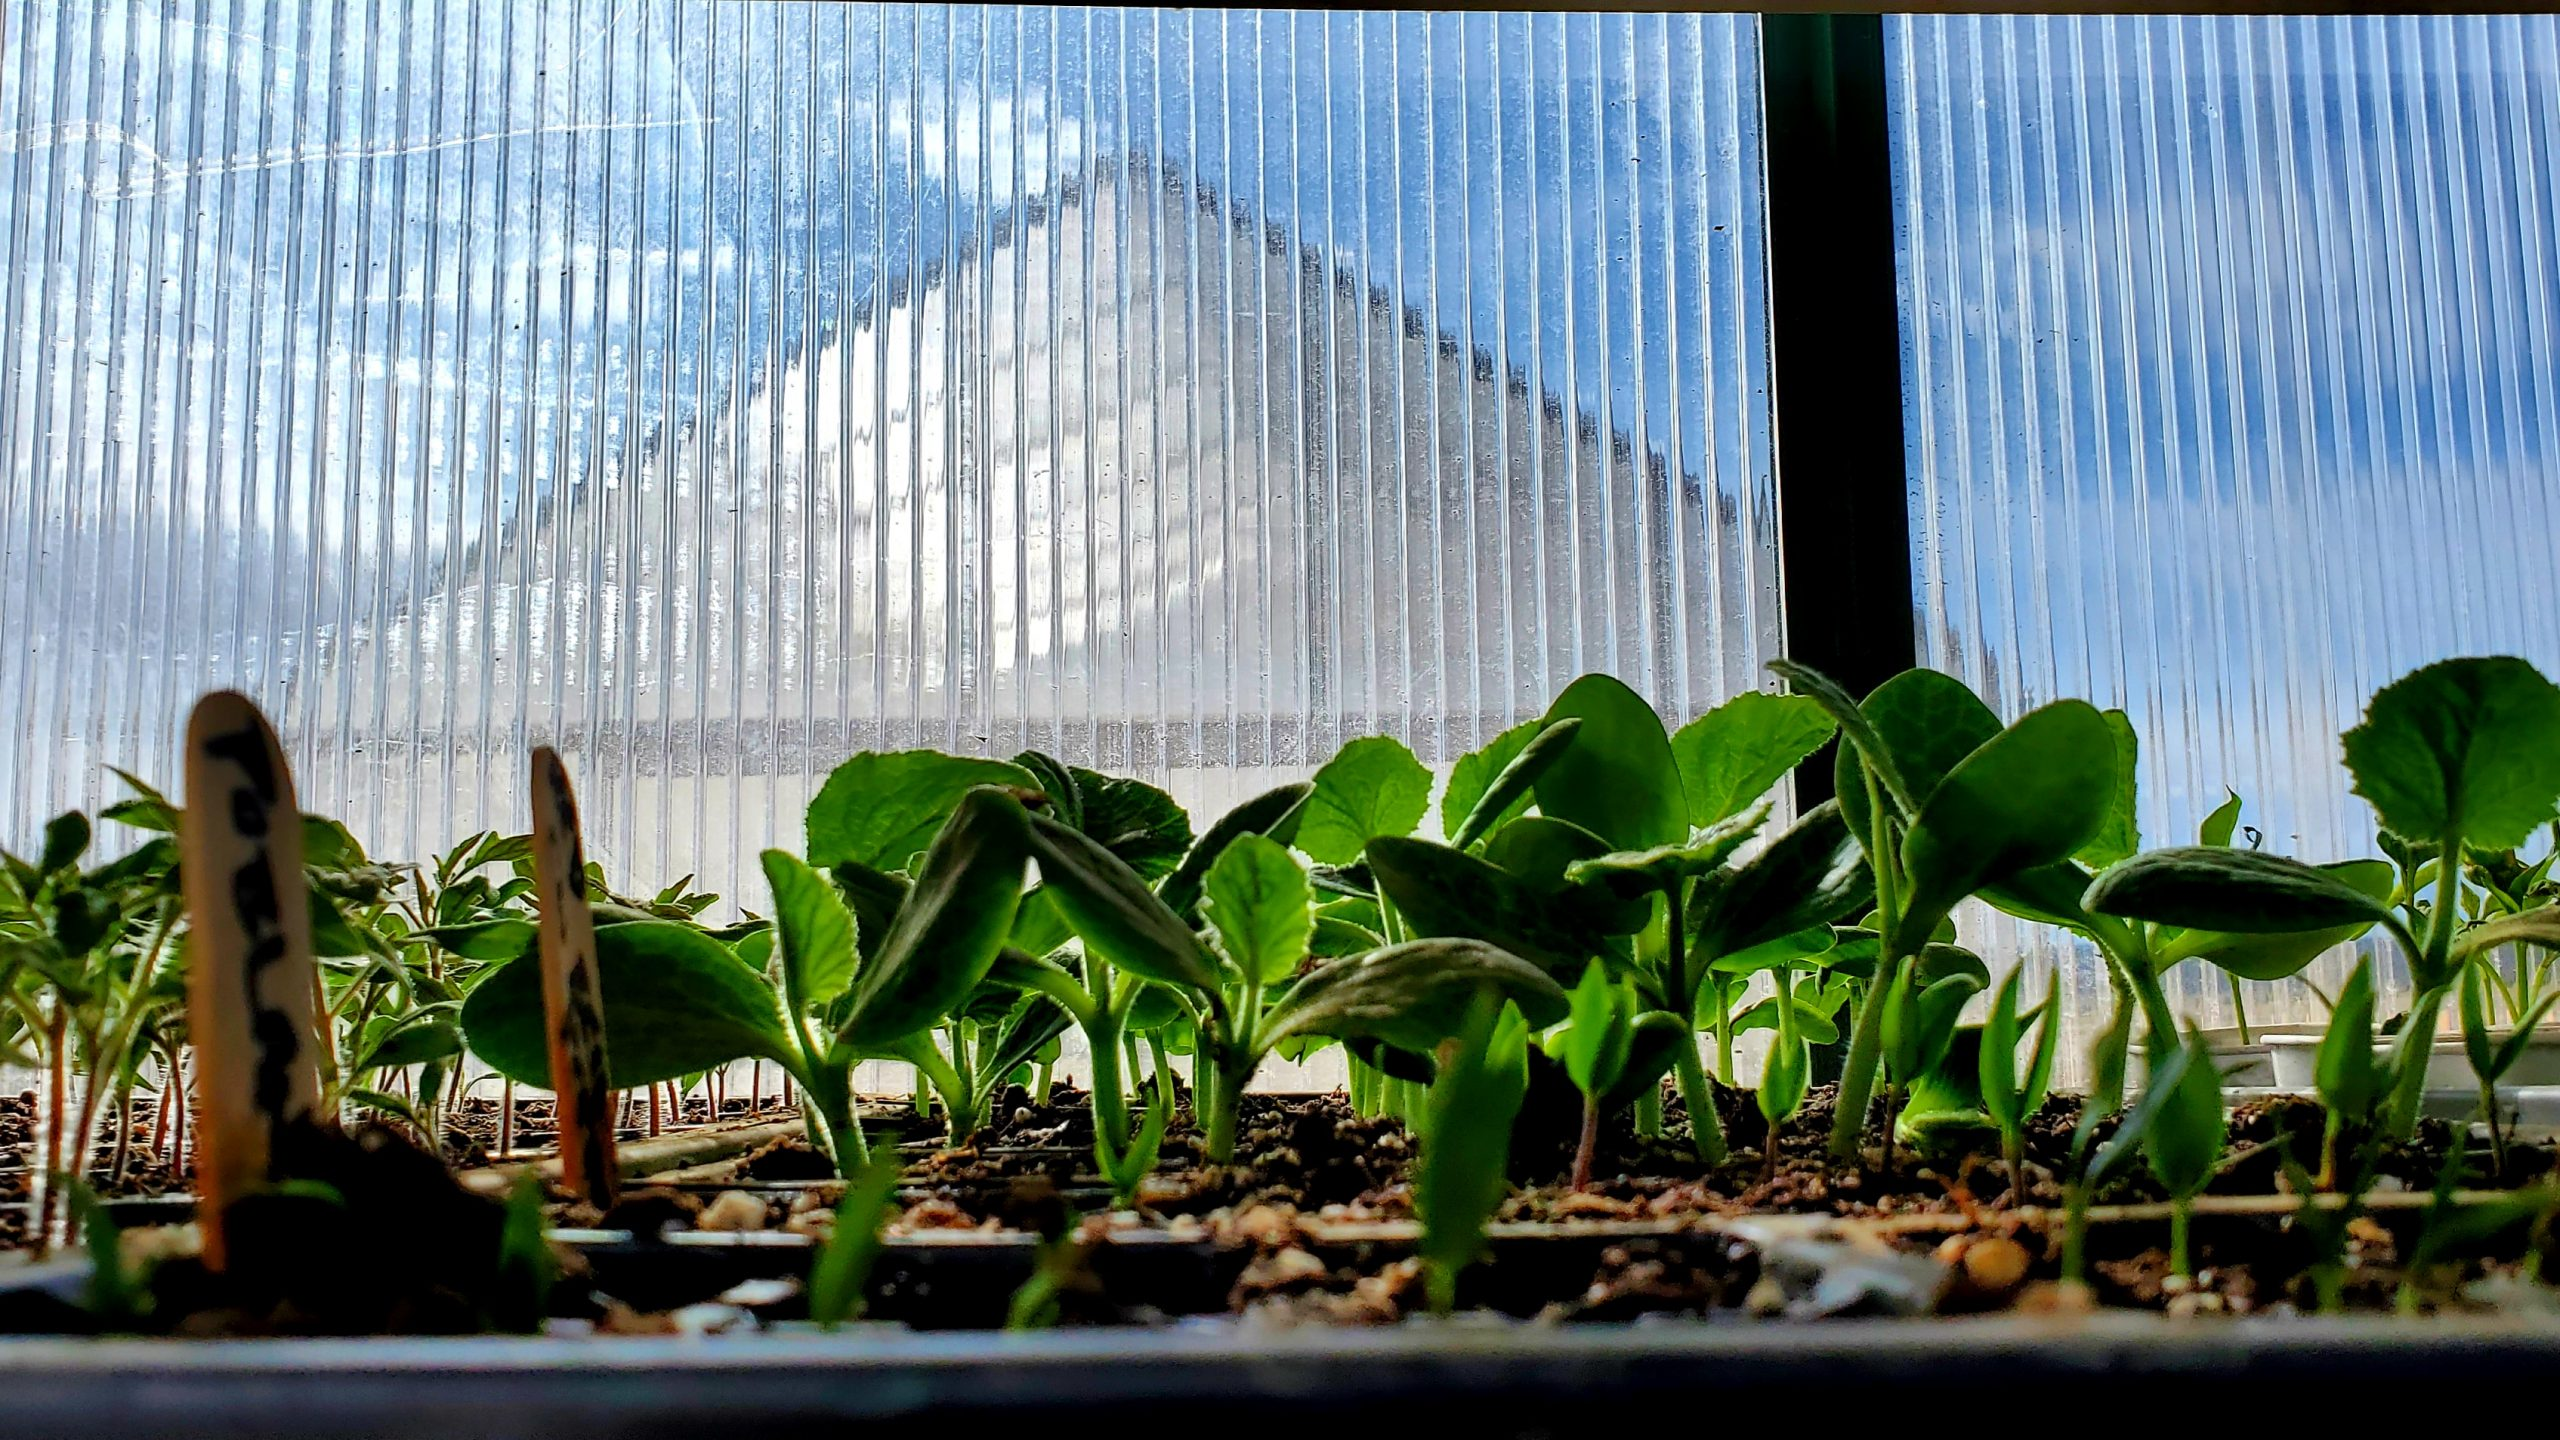 These young starts are almost ready to transplant into to larger pots and move to one of the two finishing greenhouses, seen in the background.